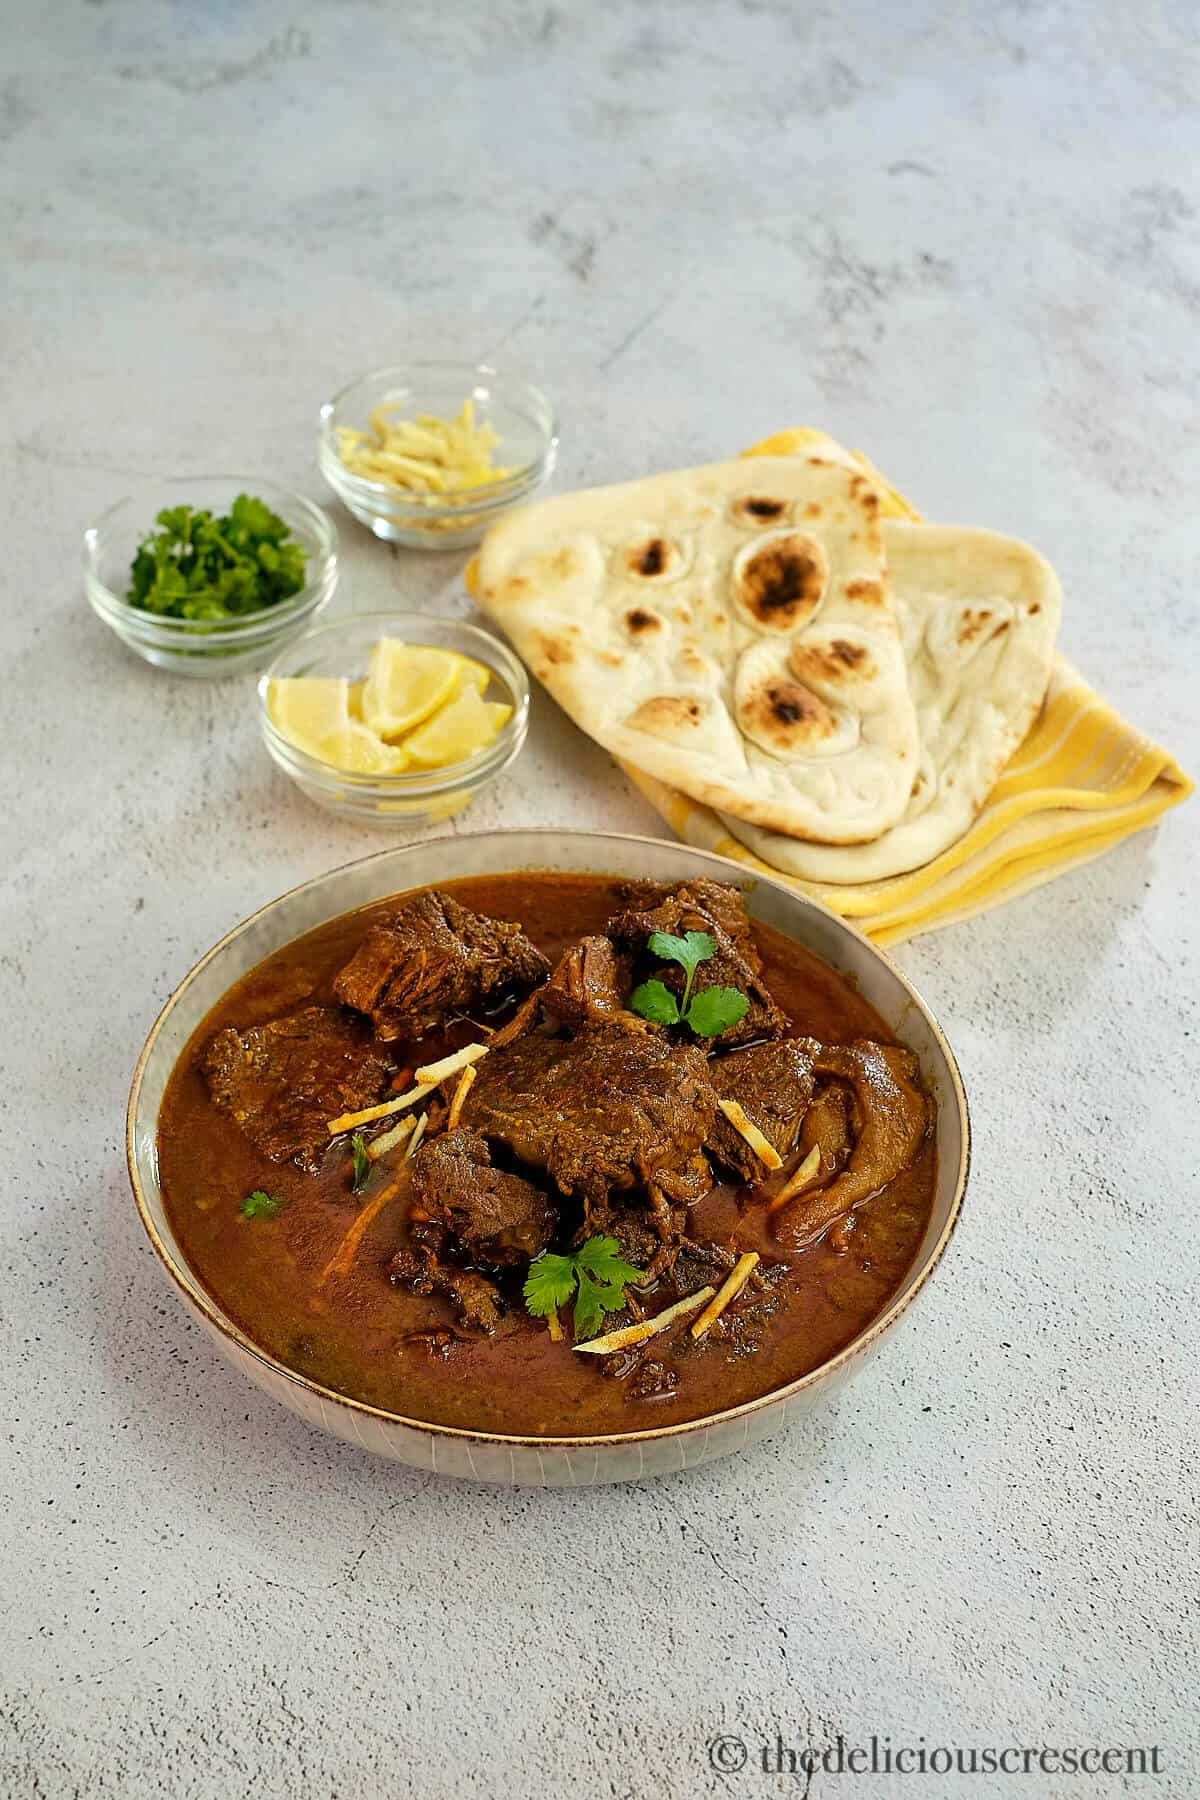 Nihari served in a dish with naan on the side.